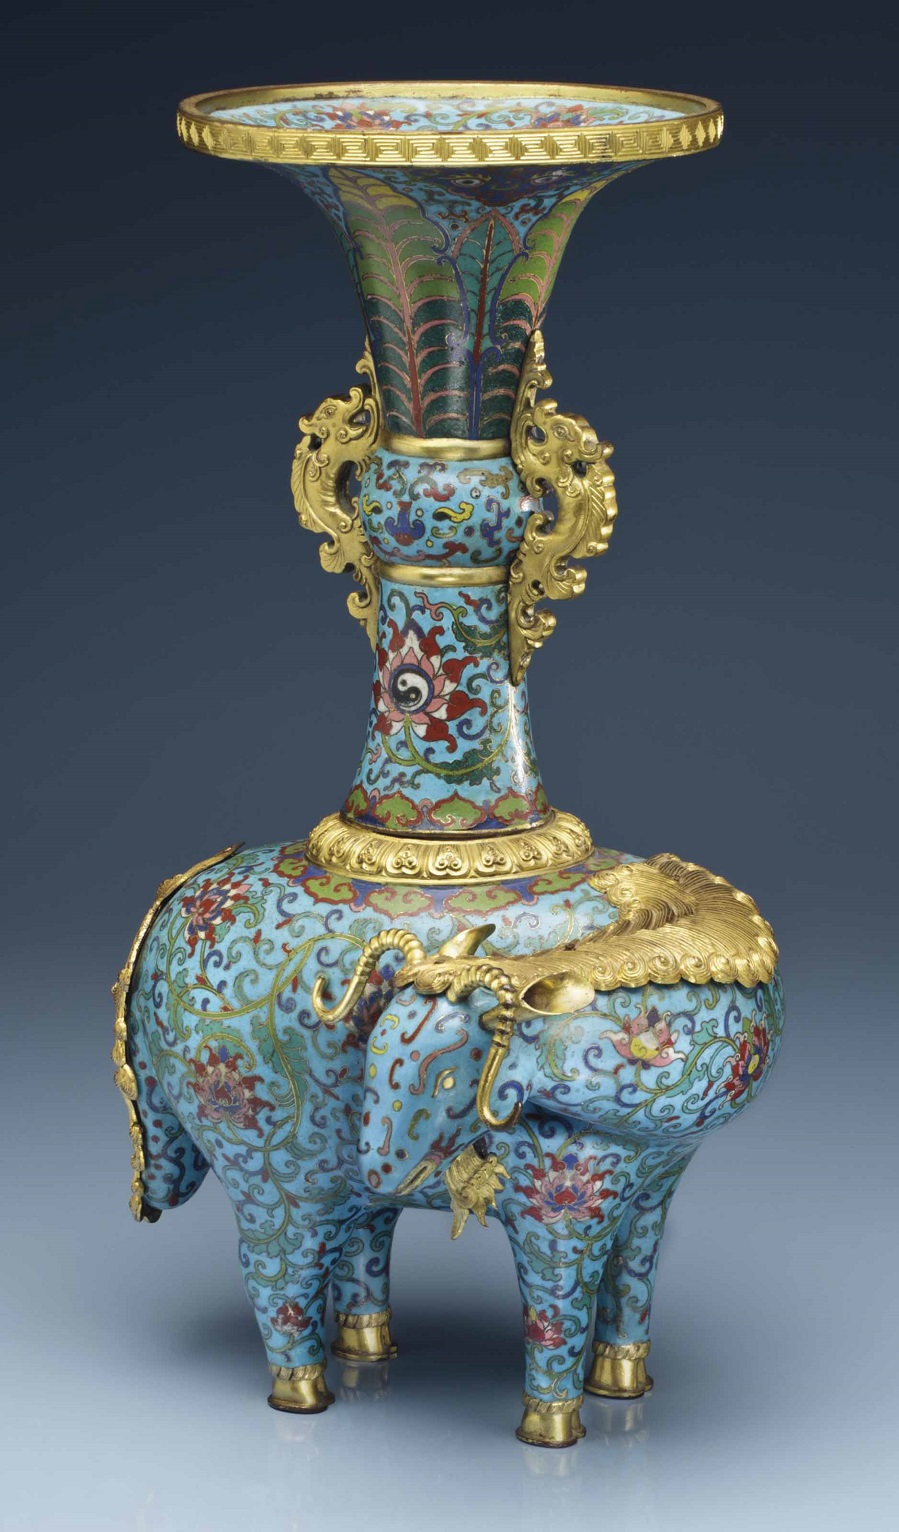 2014_NYR_02873_0617_000a_rare_large_cloisonne_enamel_ram_and_vase_group_18th_century.jpg